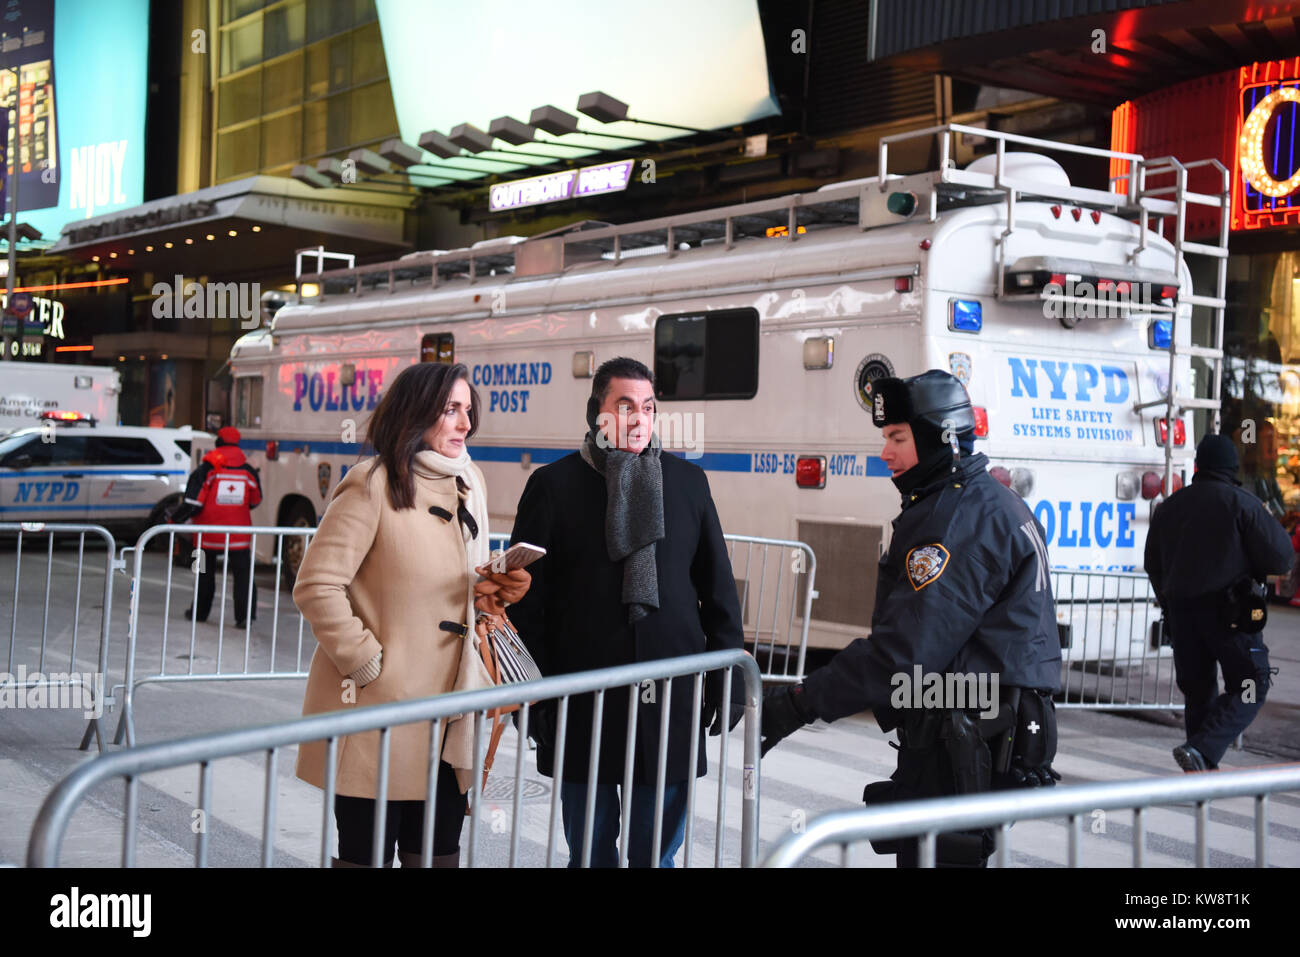 New York, USA. 31st Dec, 2017. A policeman requires fro identity cards at an entrance to Times Square in New York, - Stock Image